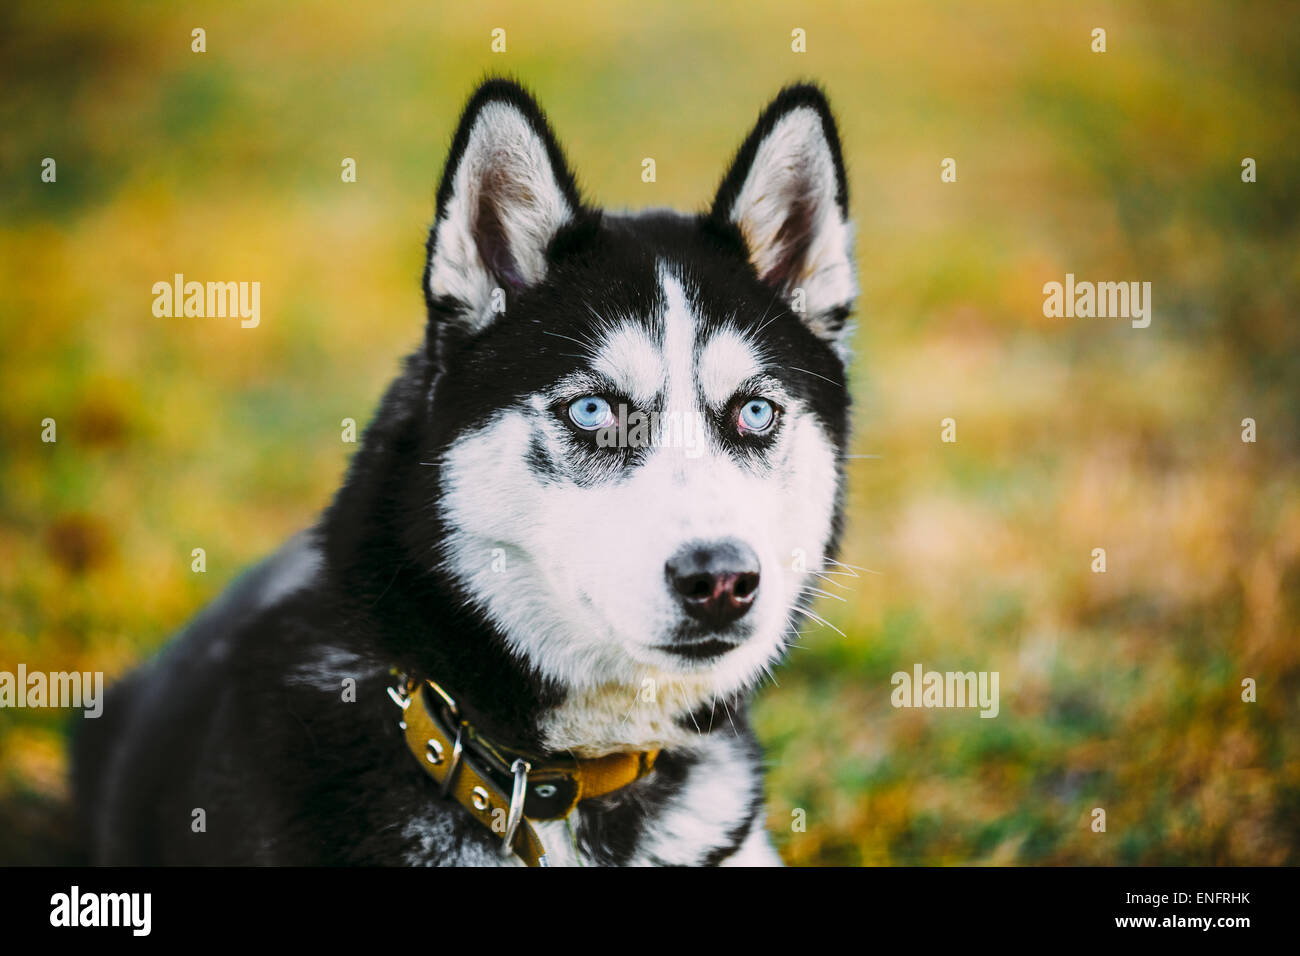 Young Happy Husky Puppy Eskimo Dog Sitting In Grass Outdoor - Stock Image